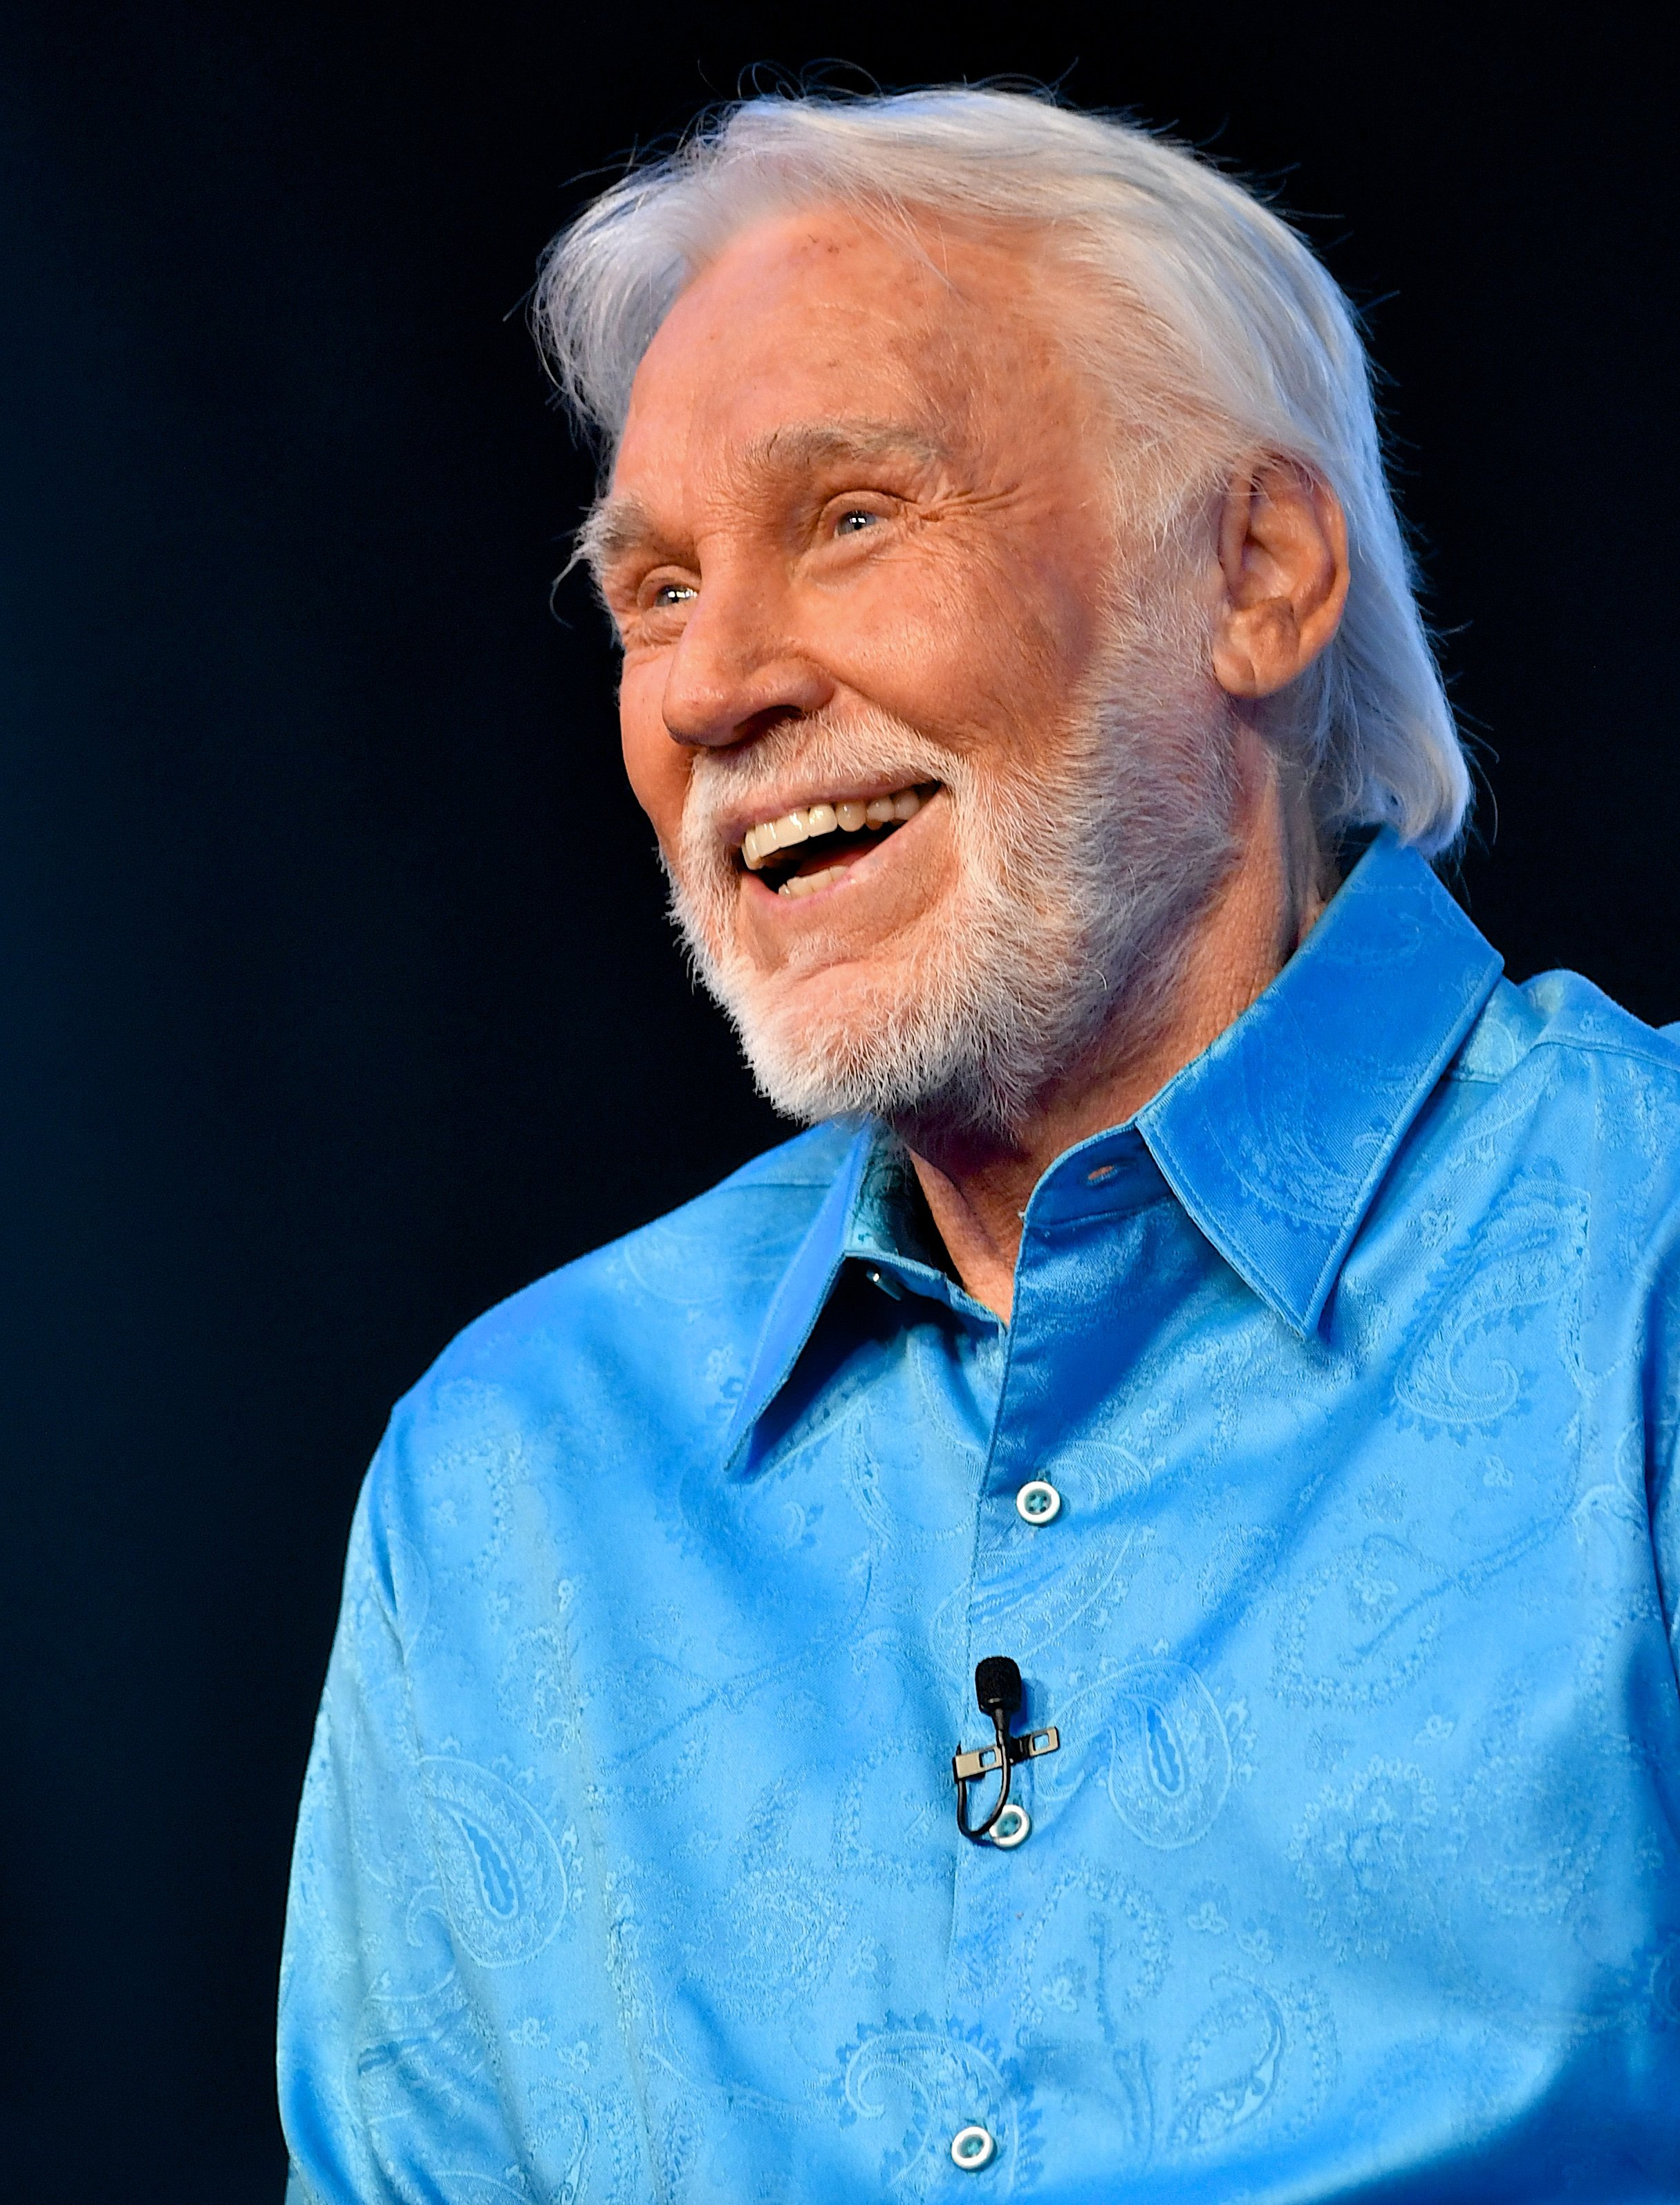 Kenny Rogers at WME on July 18, 2017, in Nashville, Tennessee. | Photo: Getty Images.